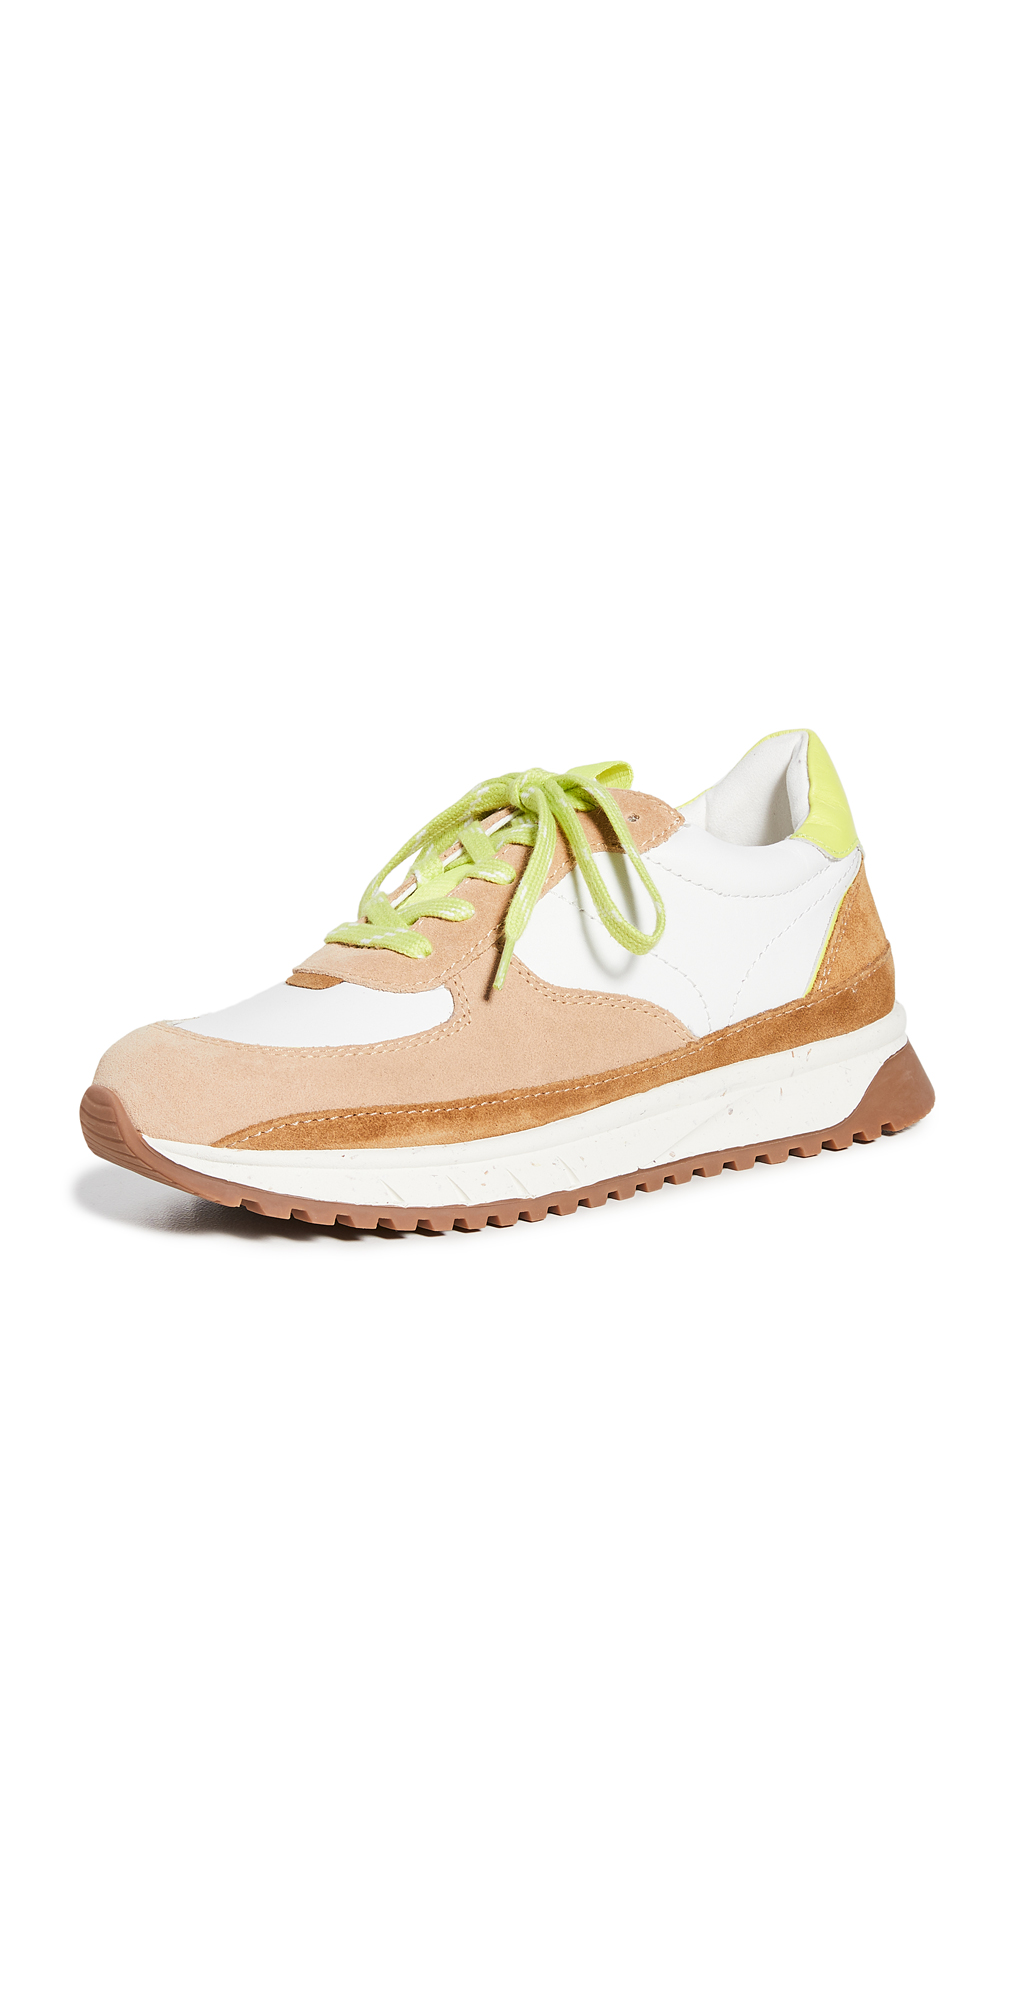 Madewell Sidewalk In Neon Trainer